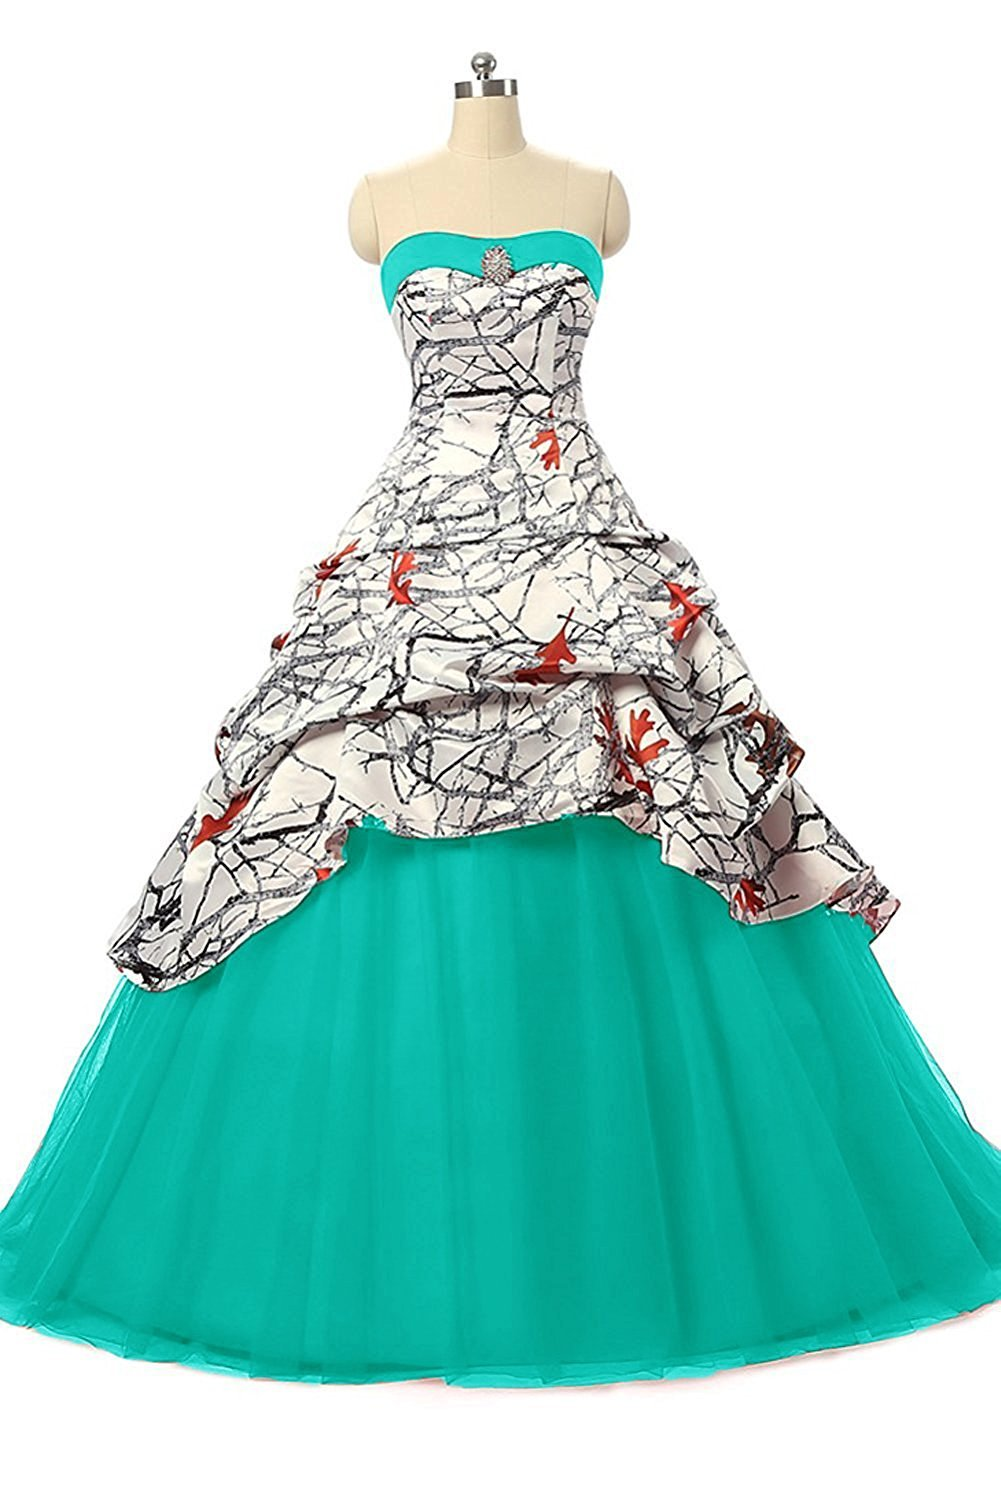 iLovewedding Realtree White Camo Wedding Dress Tulle Ball Gown Prom Party Quinceanera(Tiffany Blue 20W)